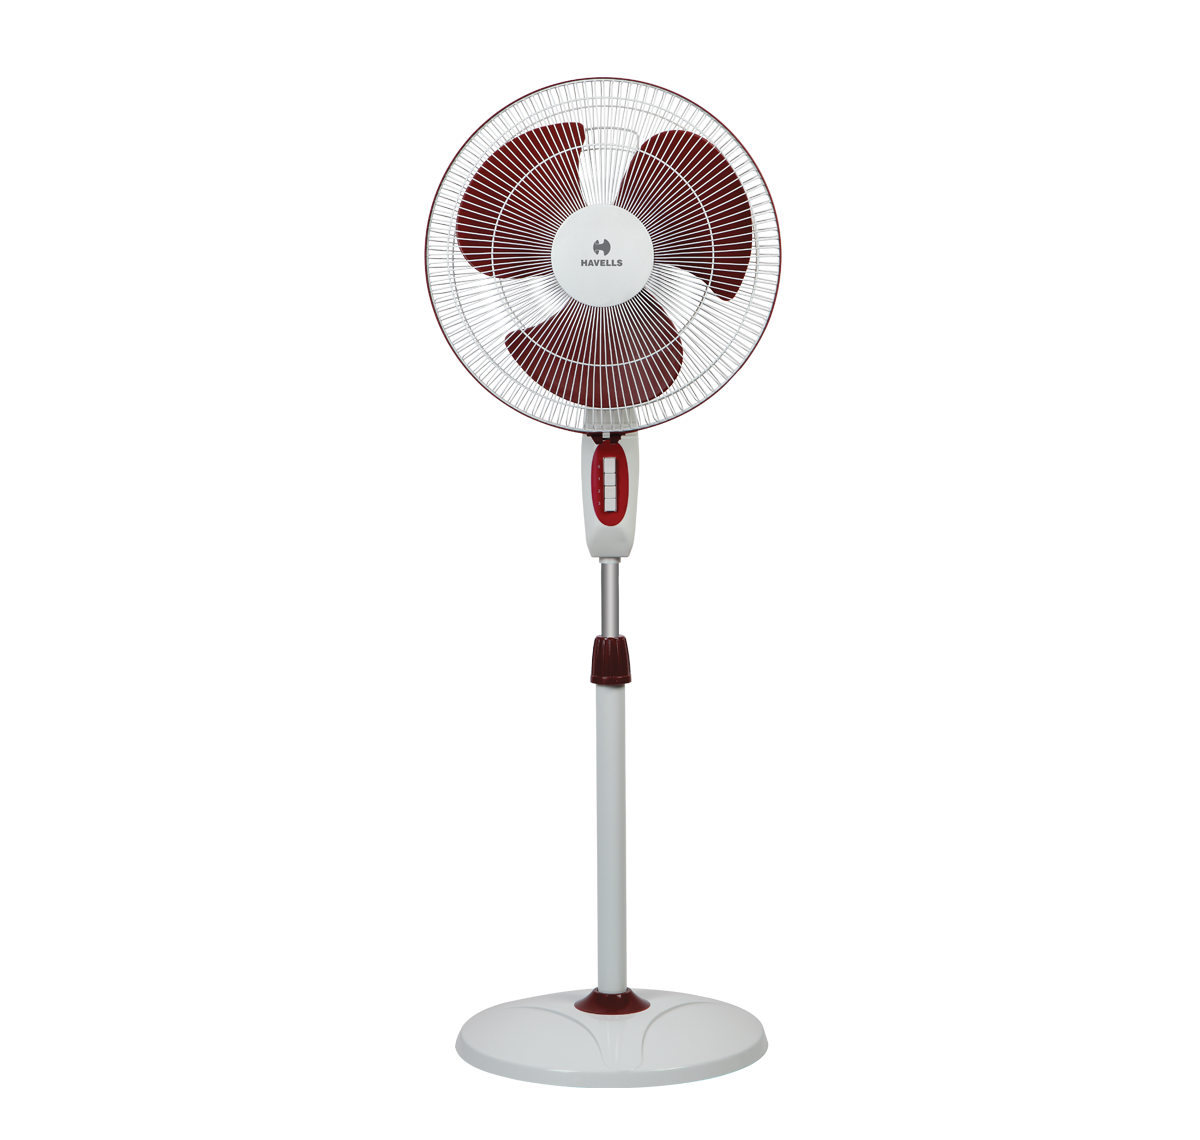 "Havells Accelero HS Pedestal Fan 400 Mm (16""), White Red"